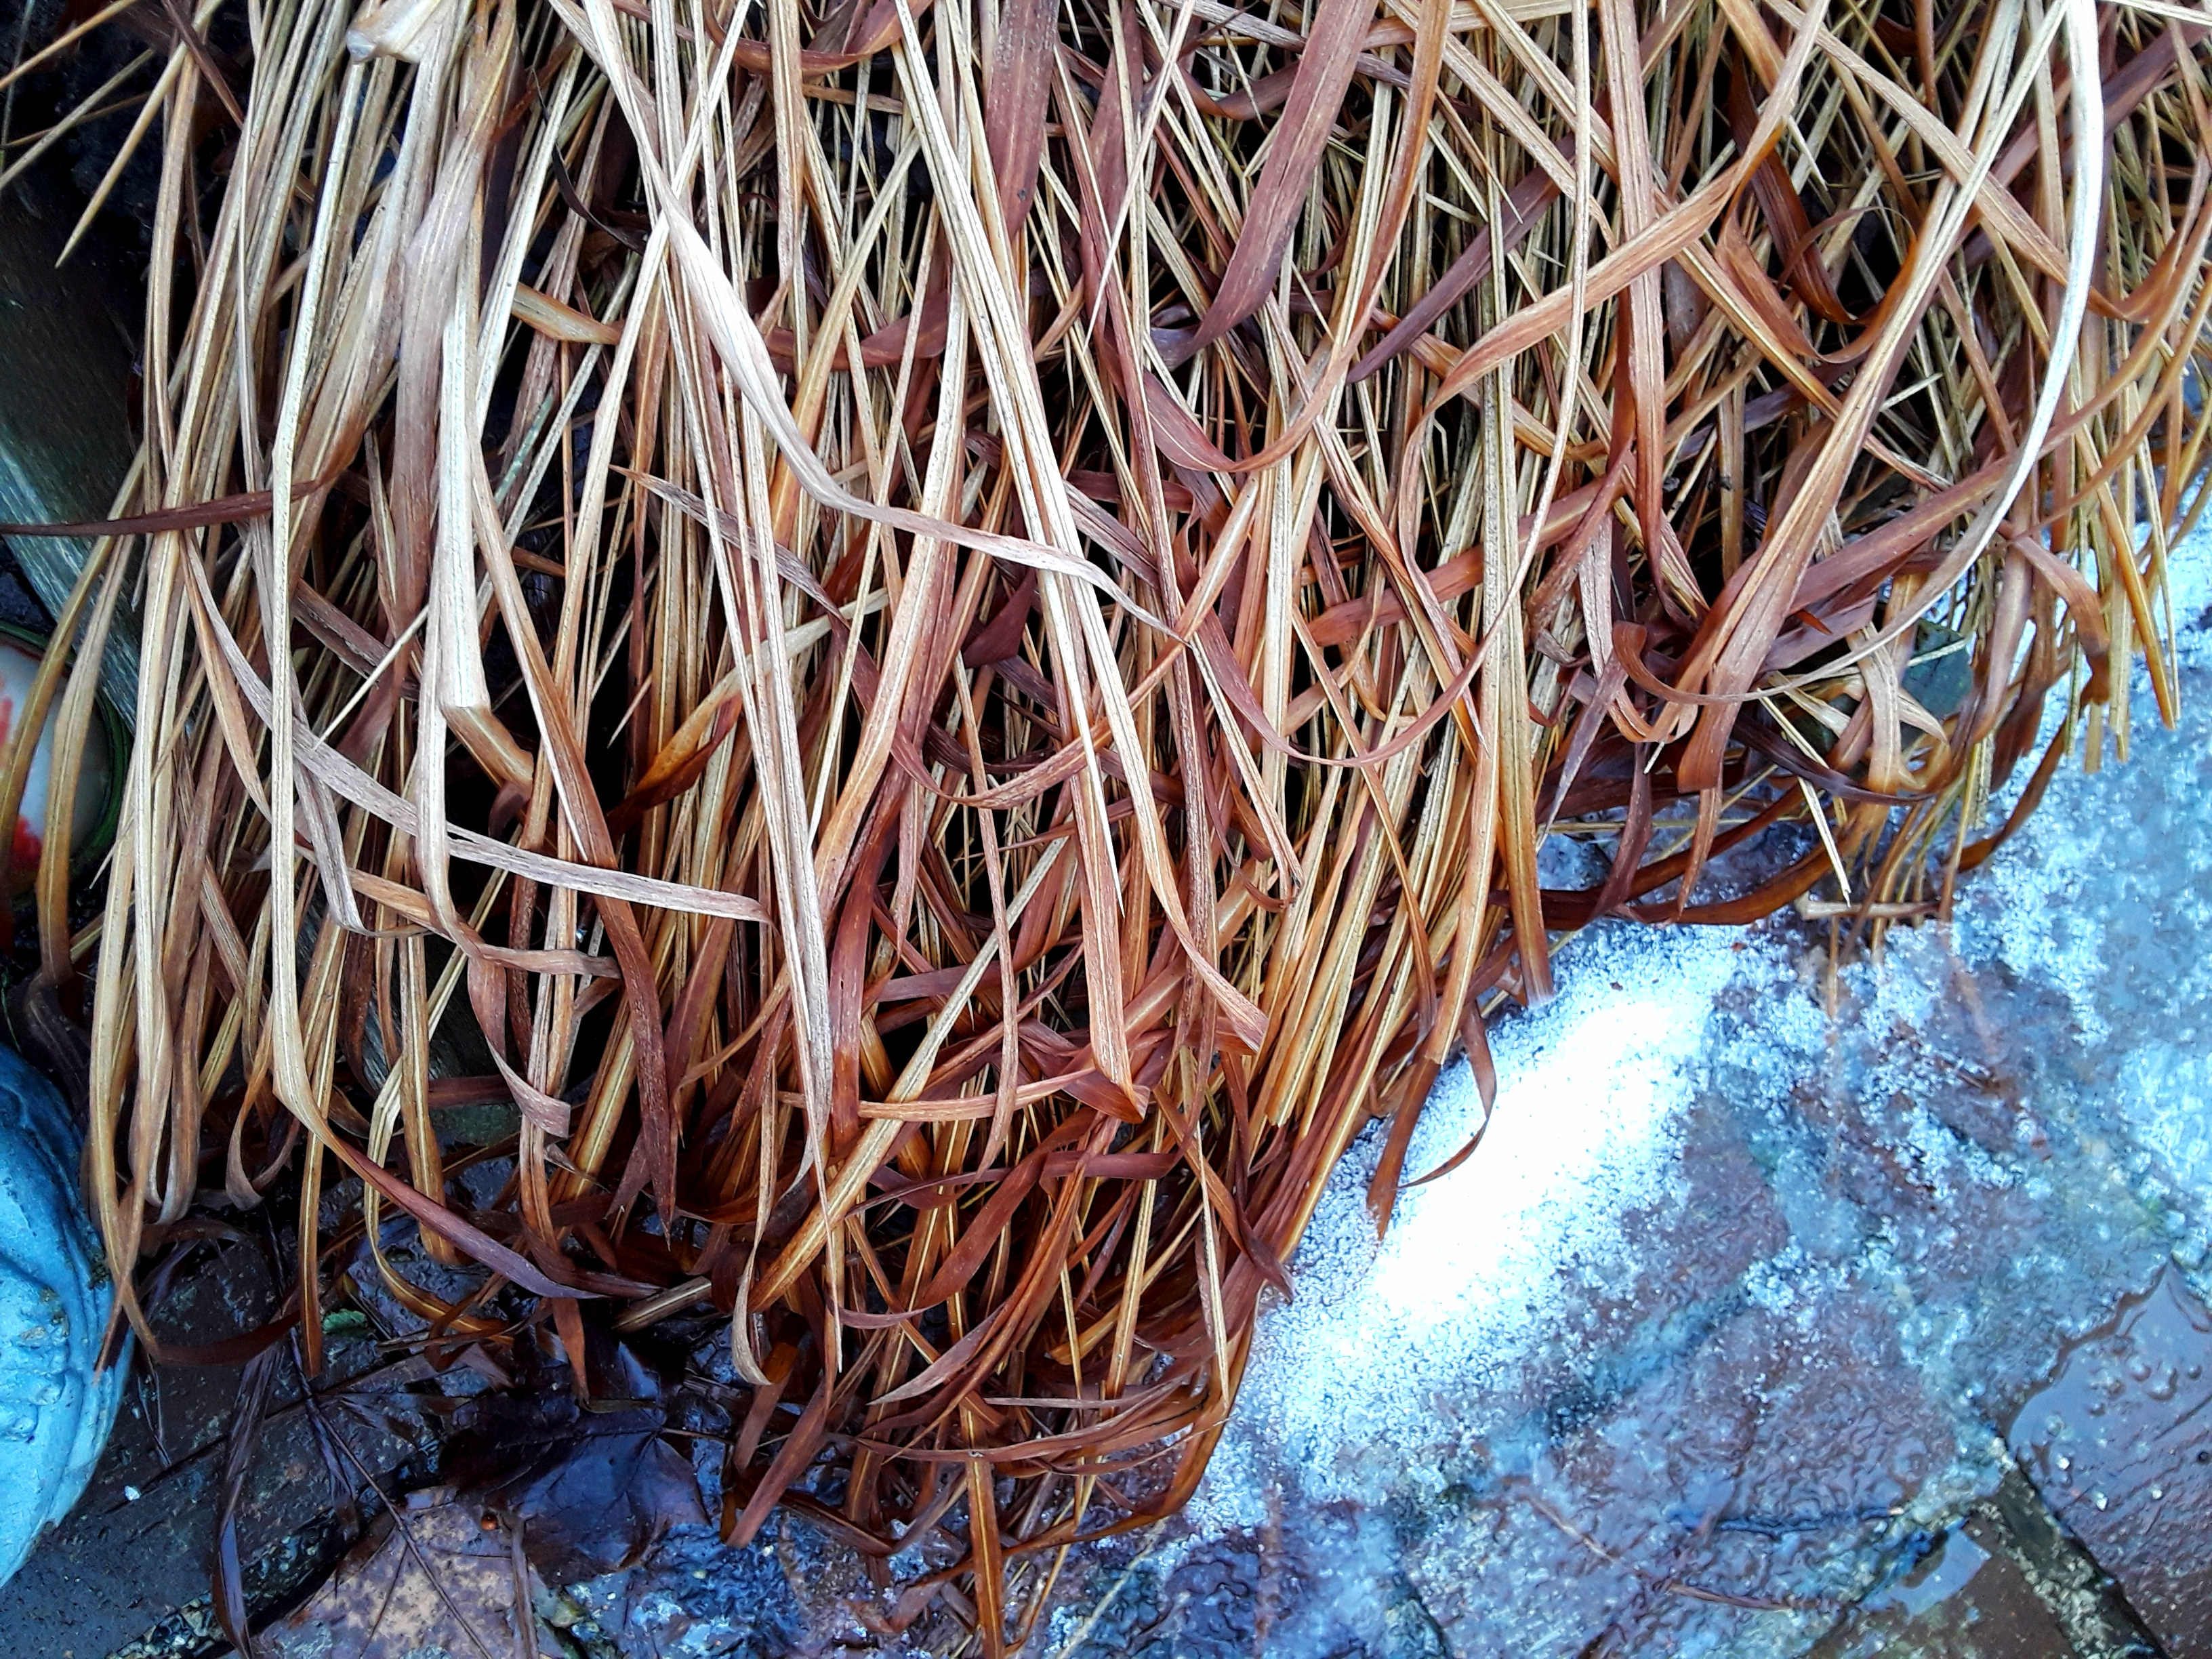 dead blood grass foliage still looks pretty against snow and ice